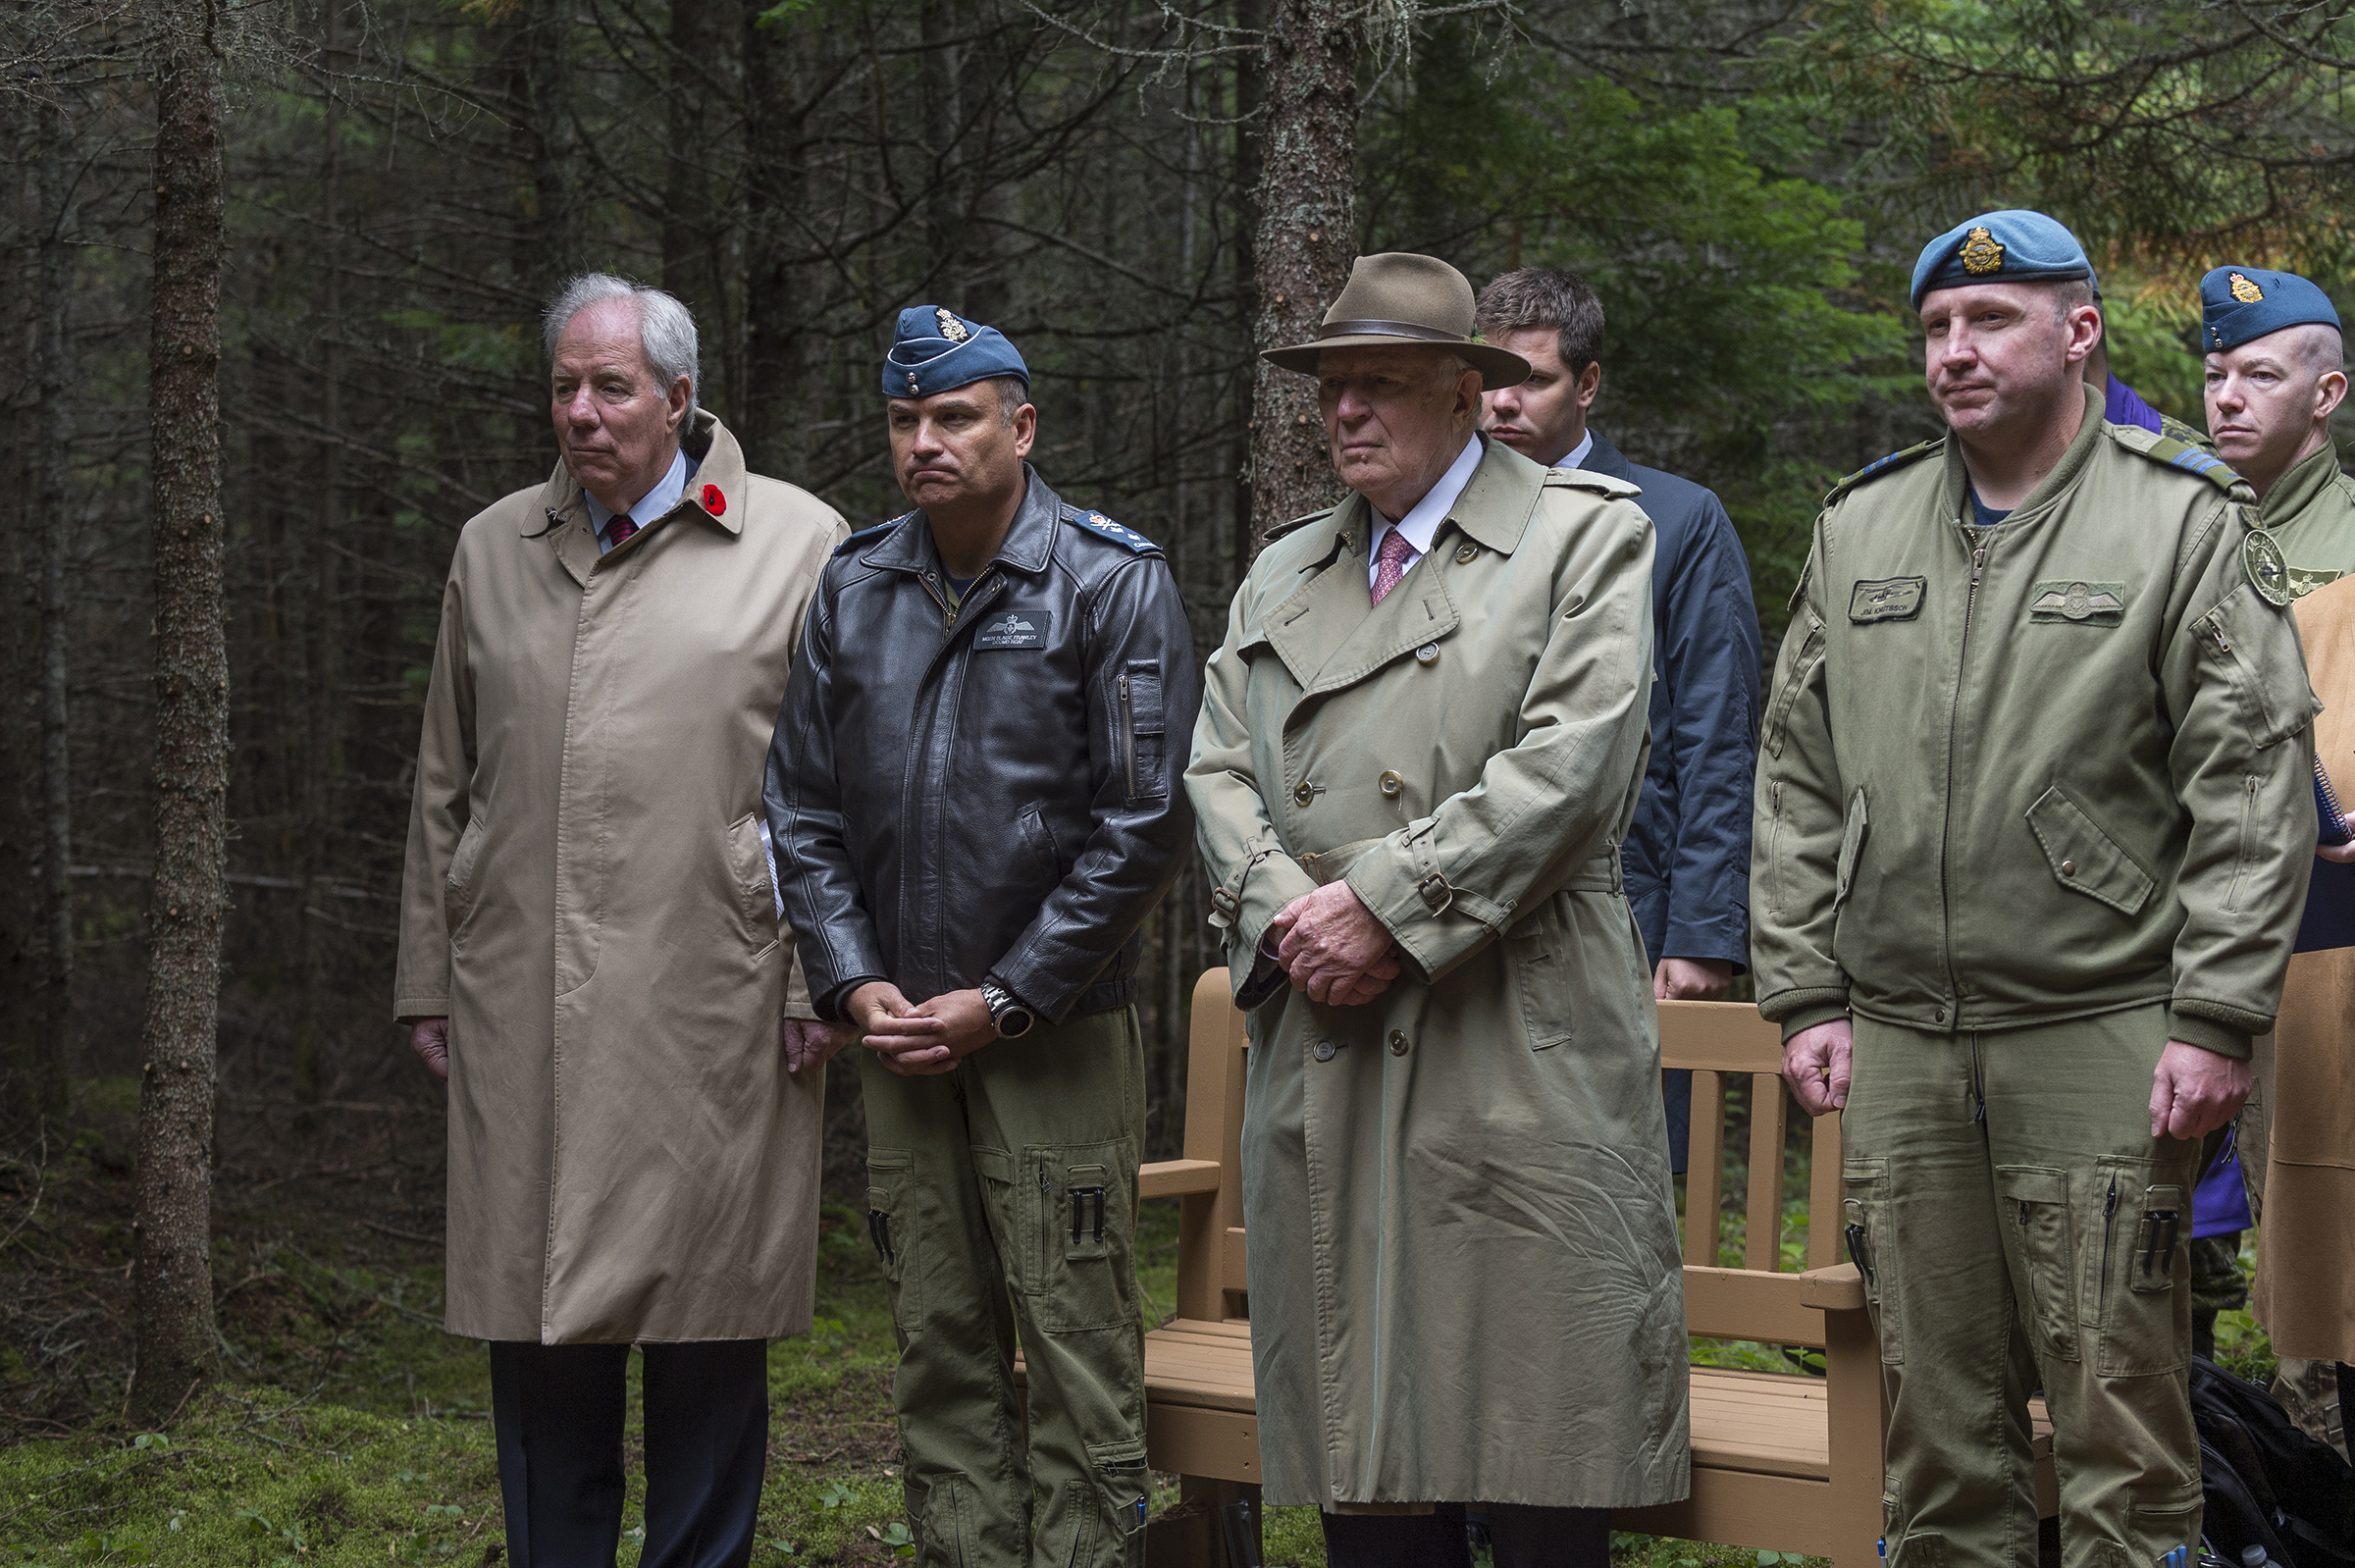 From left, Mr. Jim Irving of J.D Irving, Limited, Major-General Blaise Frawley, deputy commander of the RCAF, Mr. J.K. Irving of J.D Irving, Limited, Lieutenant-Colonel James Knutsson, commanding officer 403 Tactical Helicopter Squadron, and other guests attend the unveiling of a memorial commemorating Warrant Officer Class 2 James Edward Doan and Corporal David Alexander Rennie who were the first members of the RCAF to die on Canadian soil during the Second World War. PHOTO: Corporal Nicolas Alonso, GN02-2019-0949-009